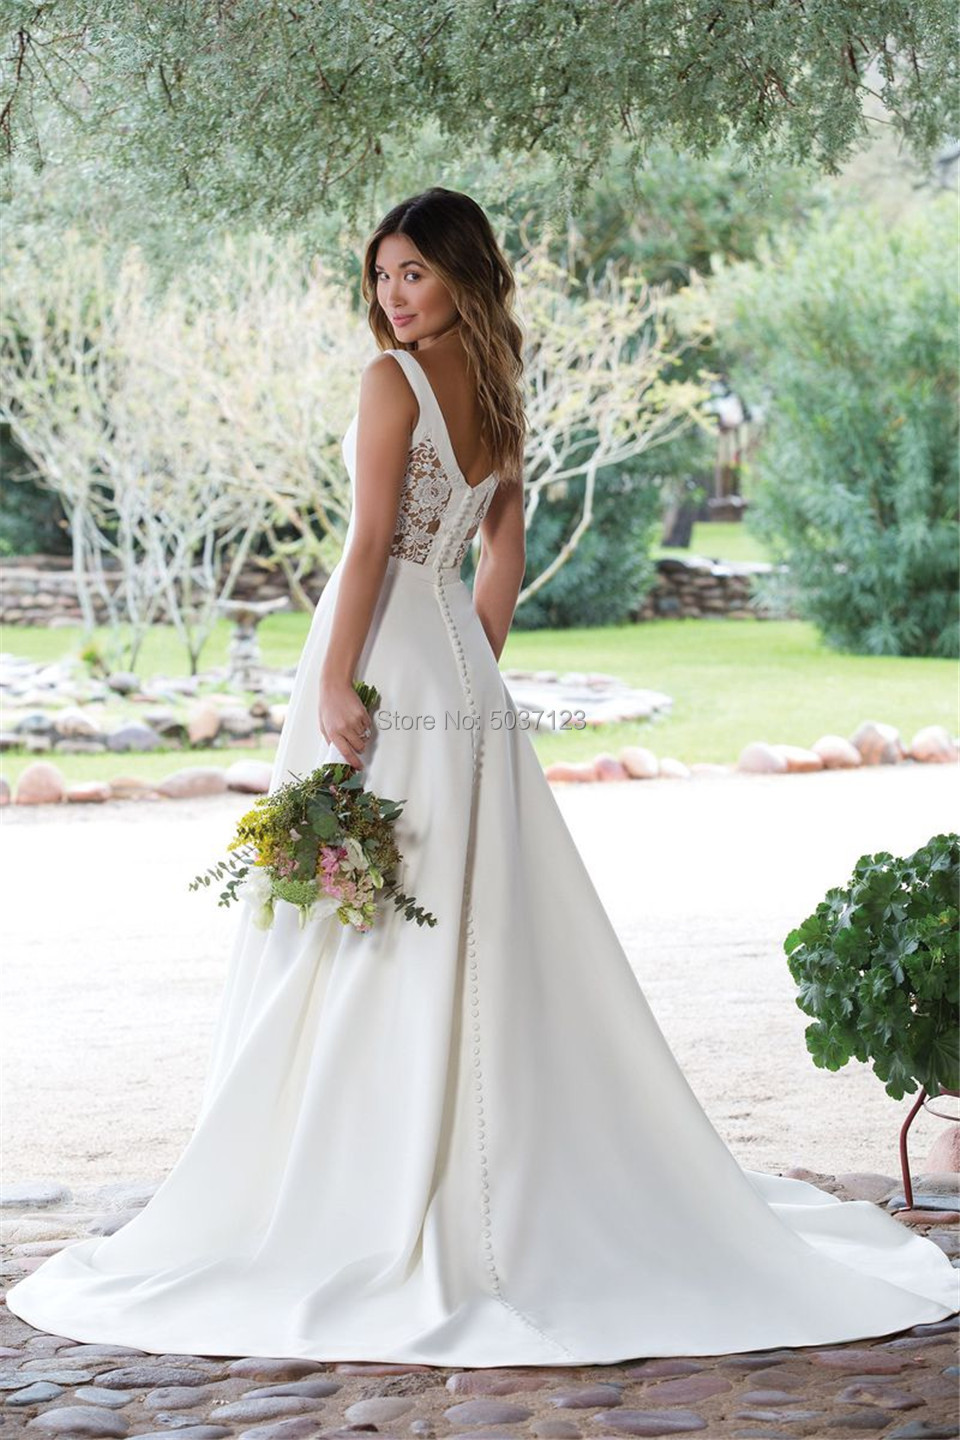 Image 3 - Satin Wedding Dresses 2019 A Line V Neck White Ivory Illusion Button Wedding Bridal Gowns Vestido De Noiva Court Train-in Wedding Dresses from Weddings & Events